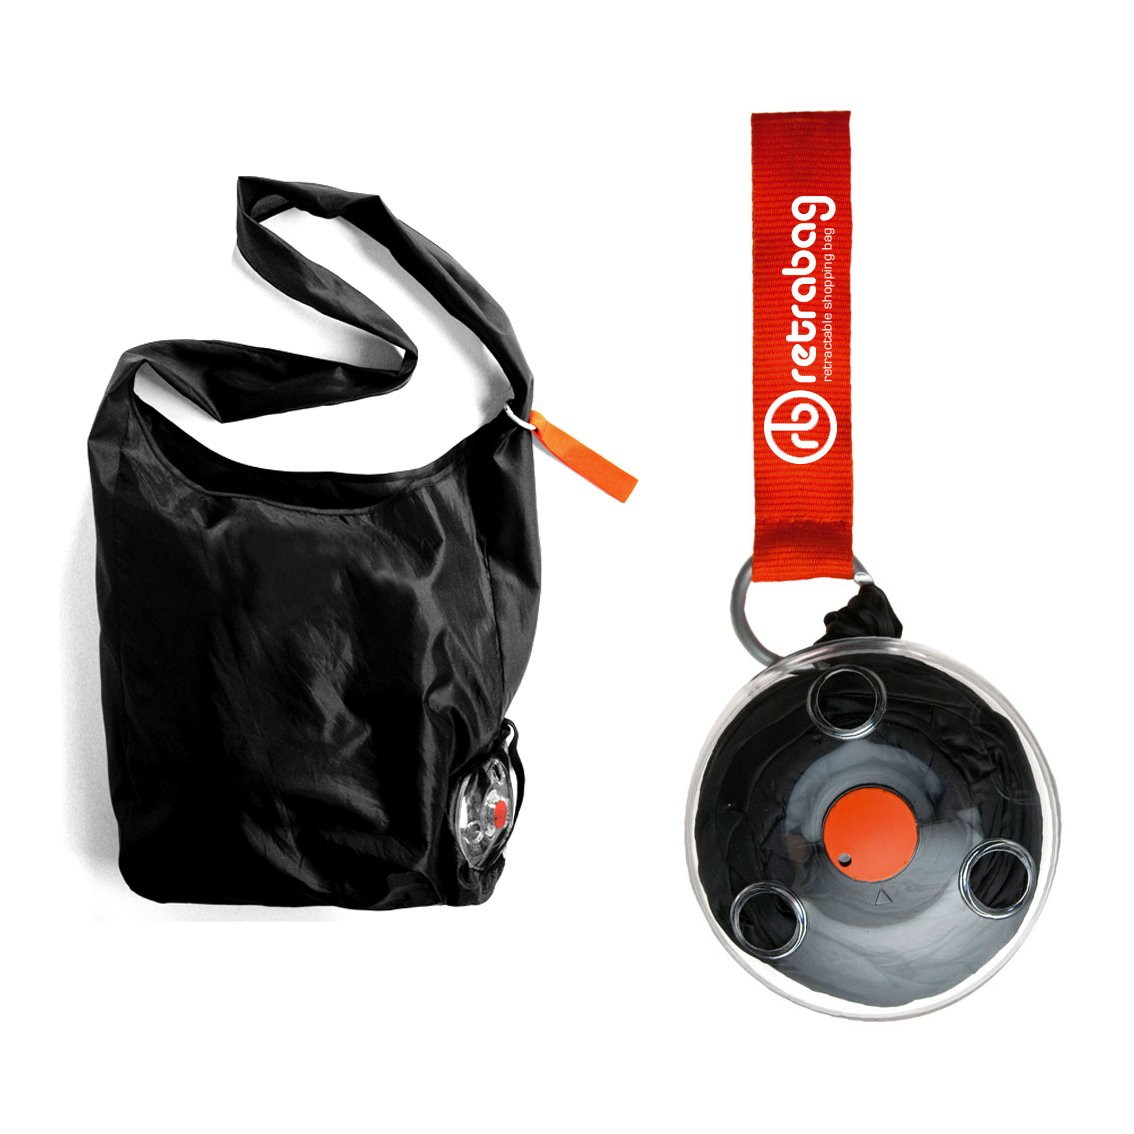 Retrabag Retractable Reusable Grocery Shopping Eco-friendly Tote Bag with Carabiner by Retrabag B016NX0OB2